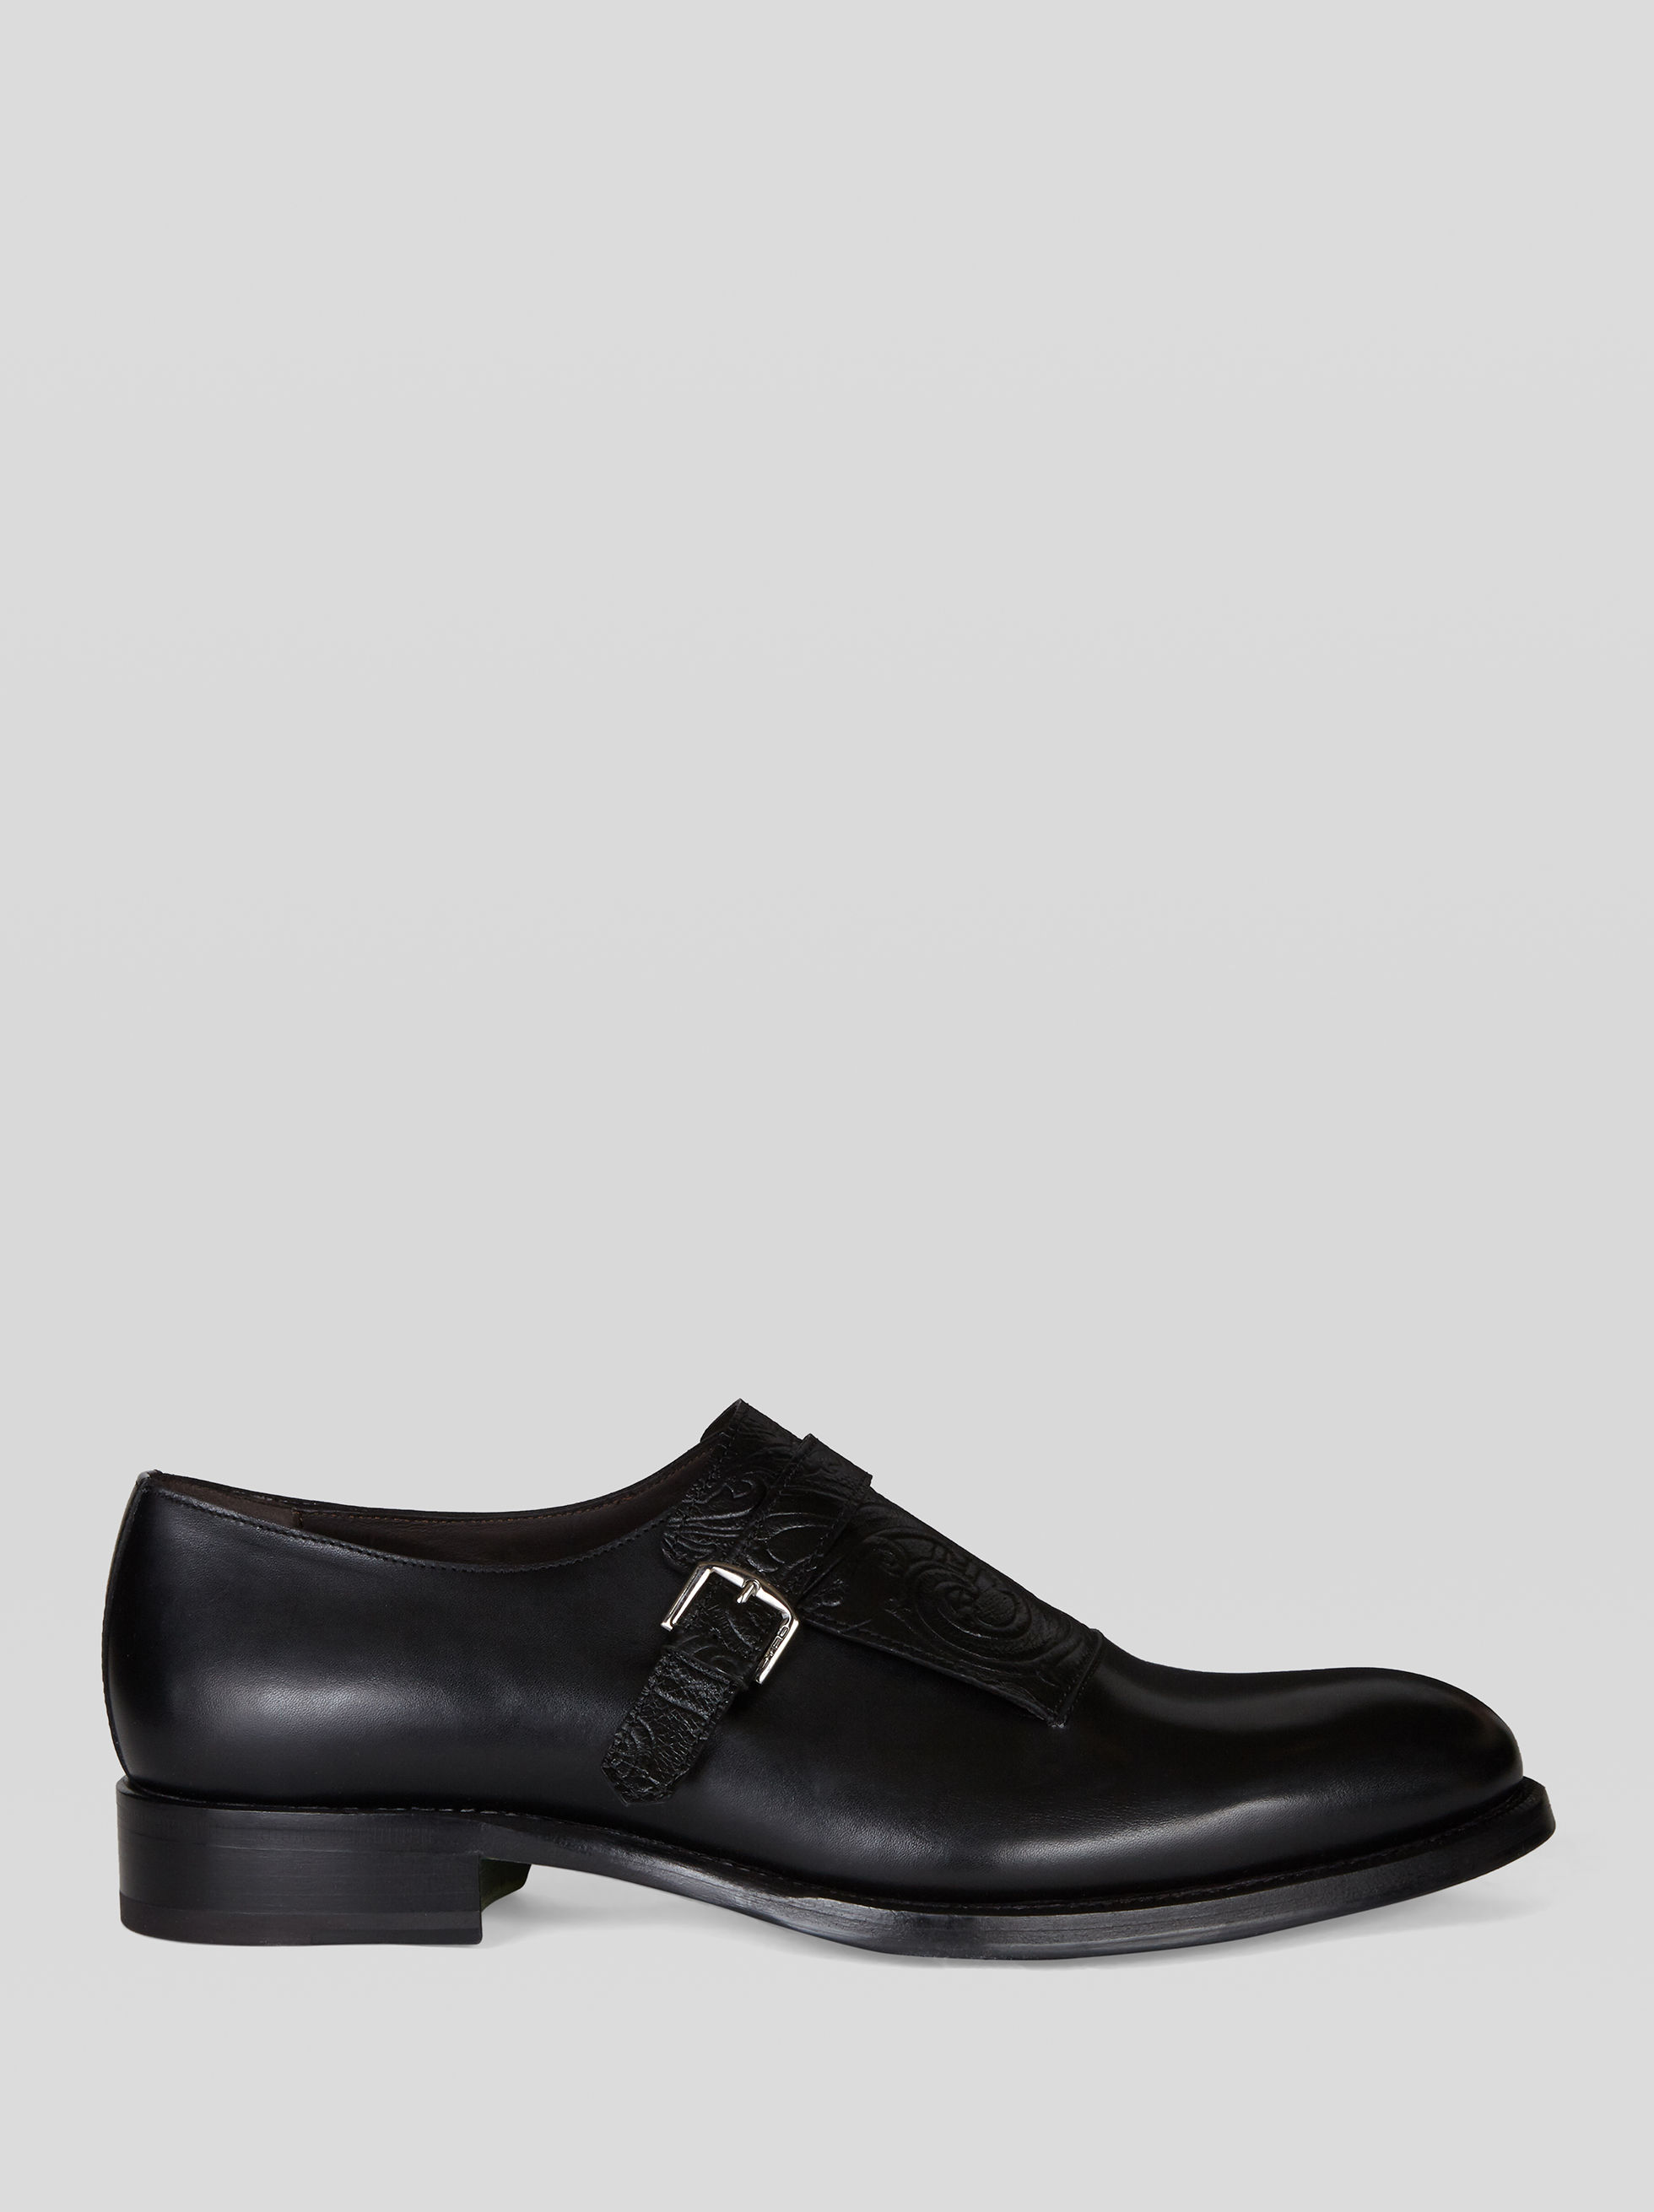 LEATHER MONK STRAPS WITH PAISLEY PATTERN